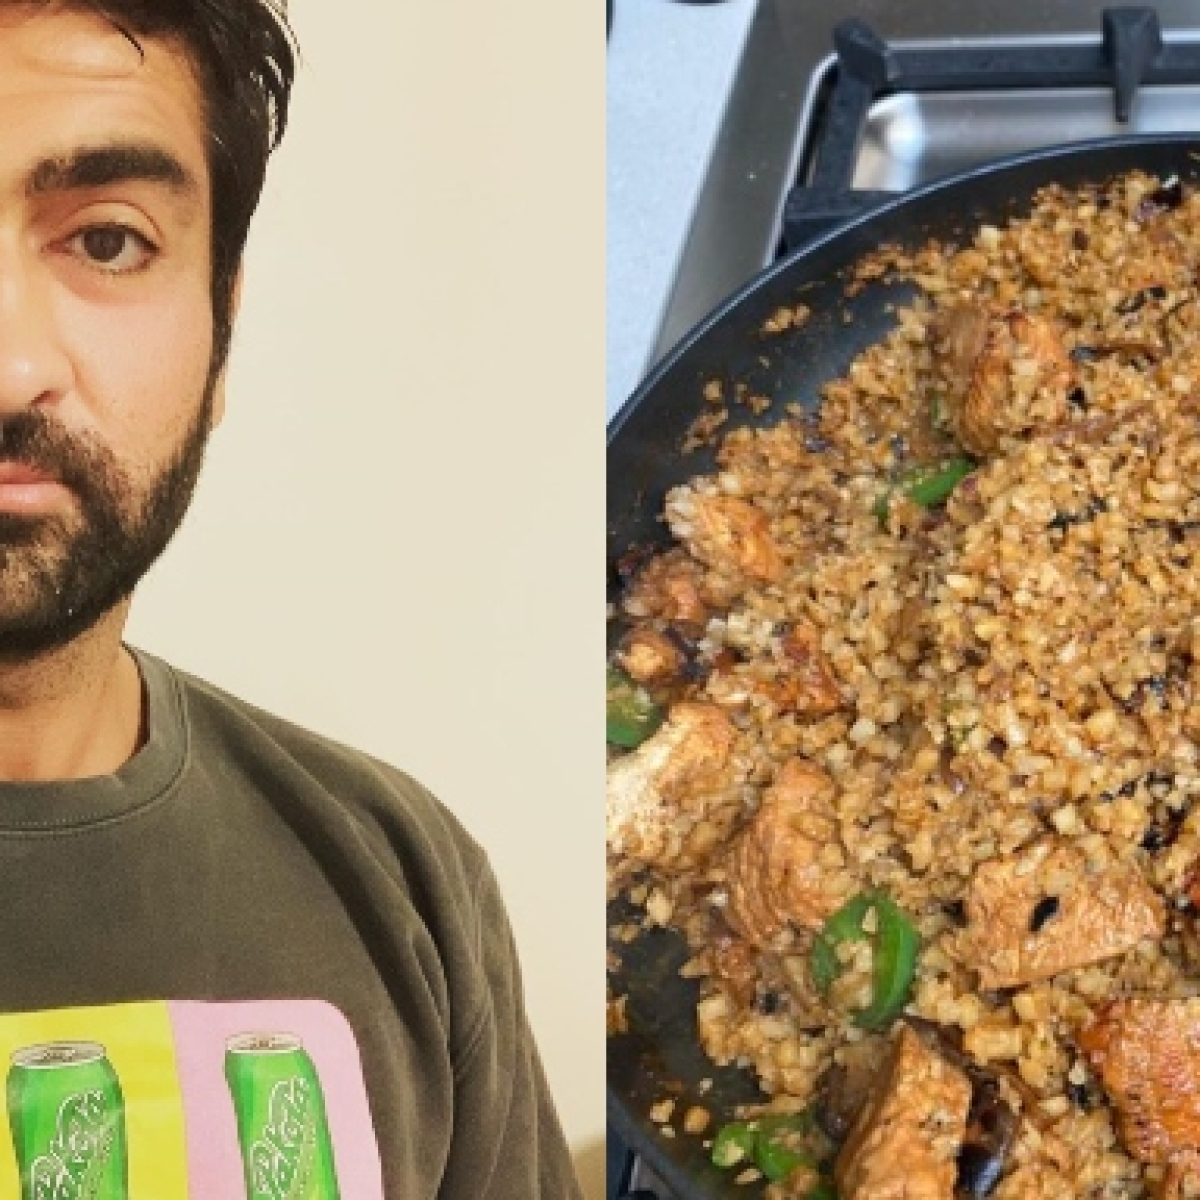 'Accounts for blasphemy': Desi Twitter offended by Kumail Nanjiani's 'cauliflower rice biryani'